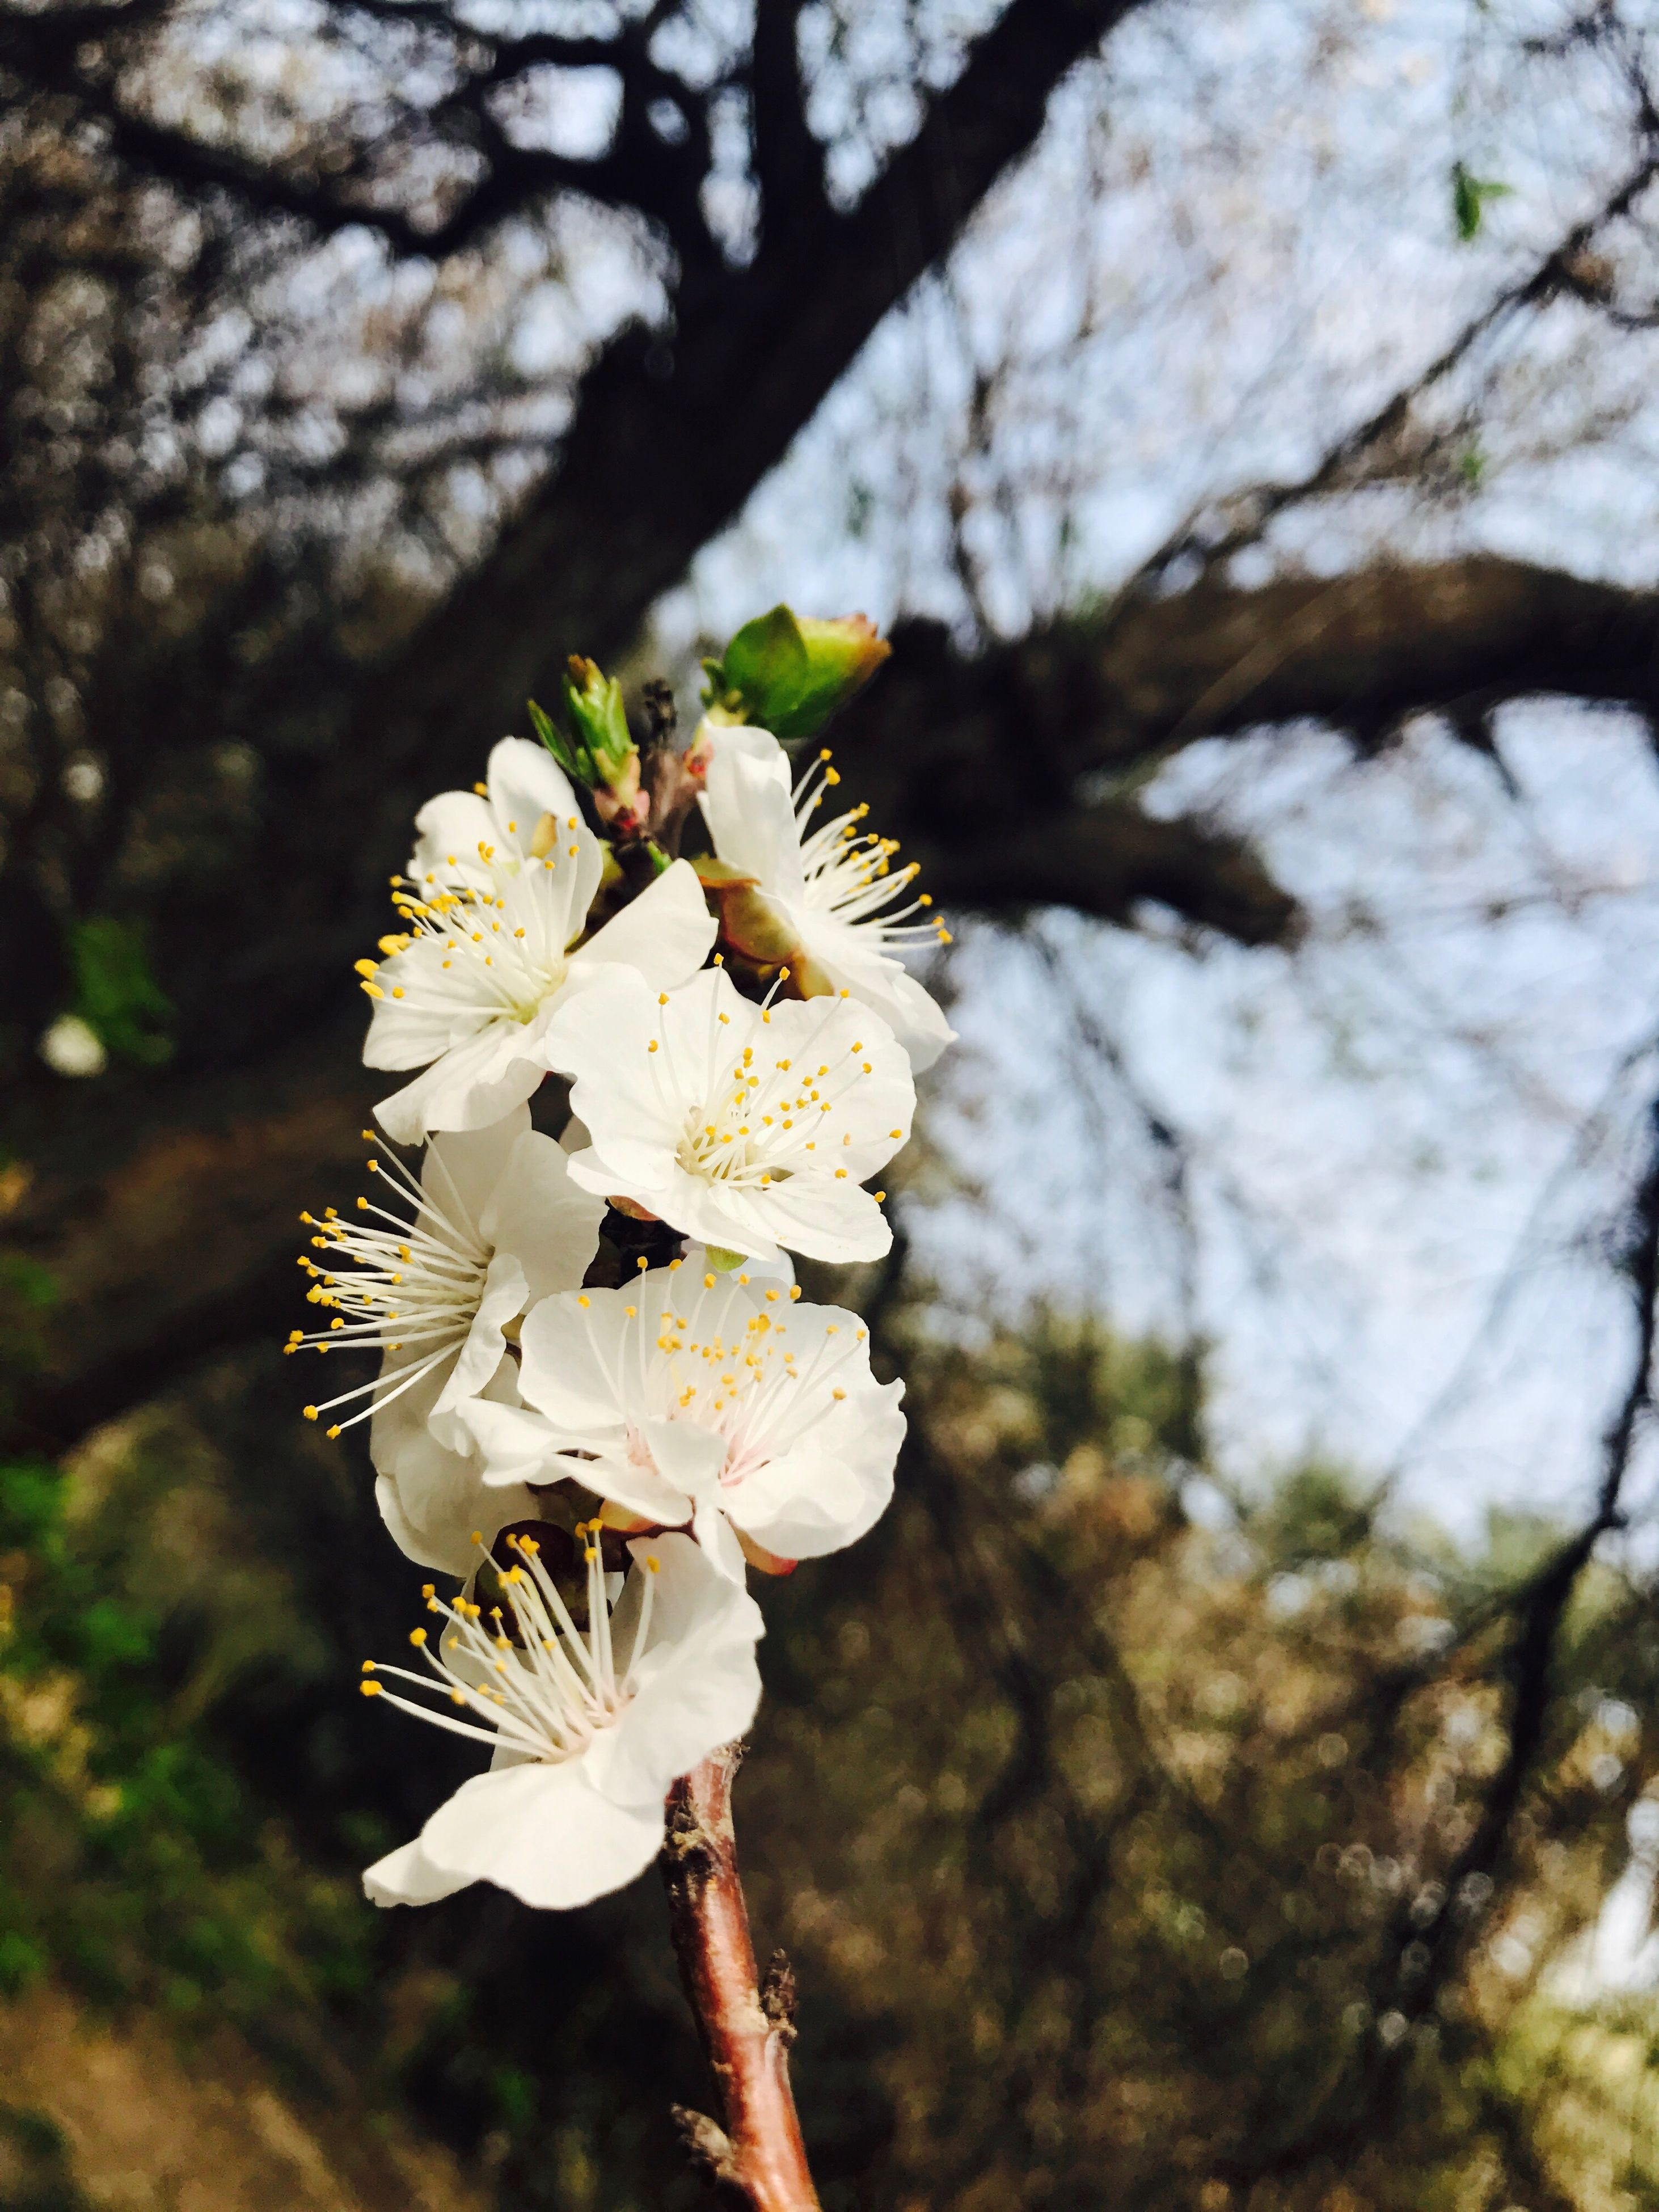 flower, nature, white color, blossom, beauty in nature, growth, branch, tree, springtime, focus on foreground, fragility, twig, outdoors, no people, freshness, flower head, day, close-up, plum blossom